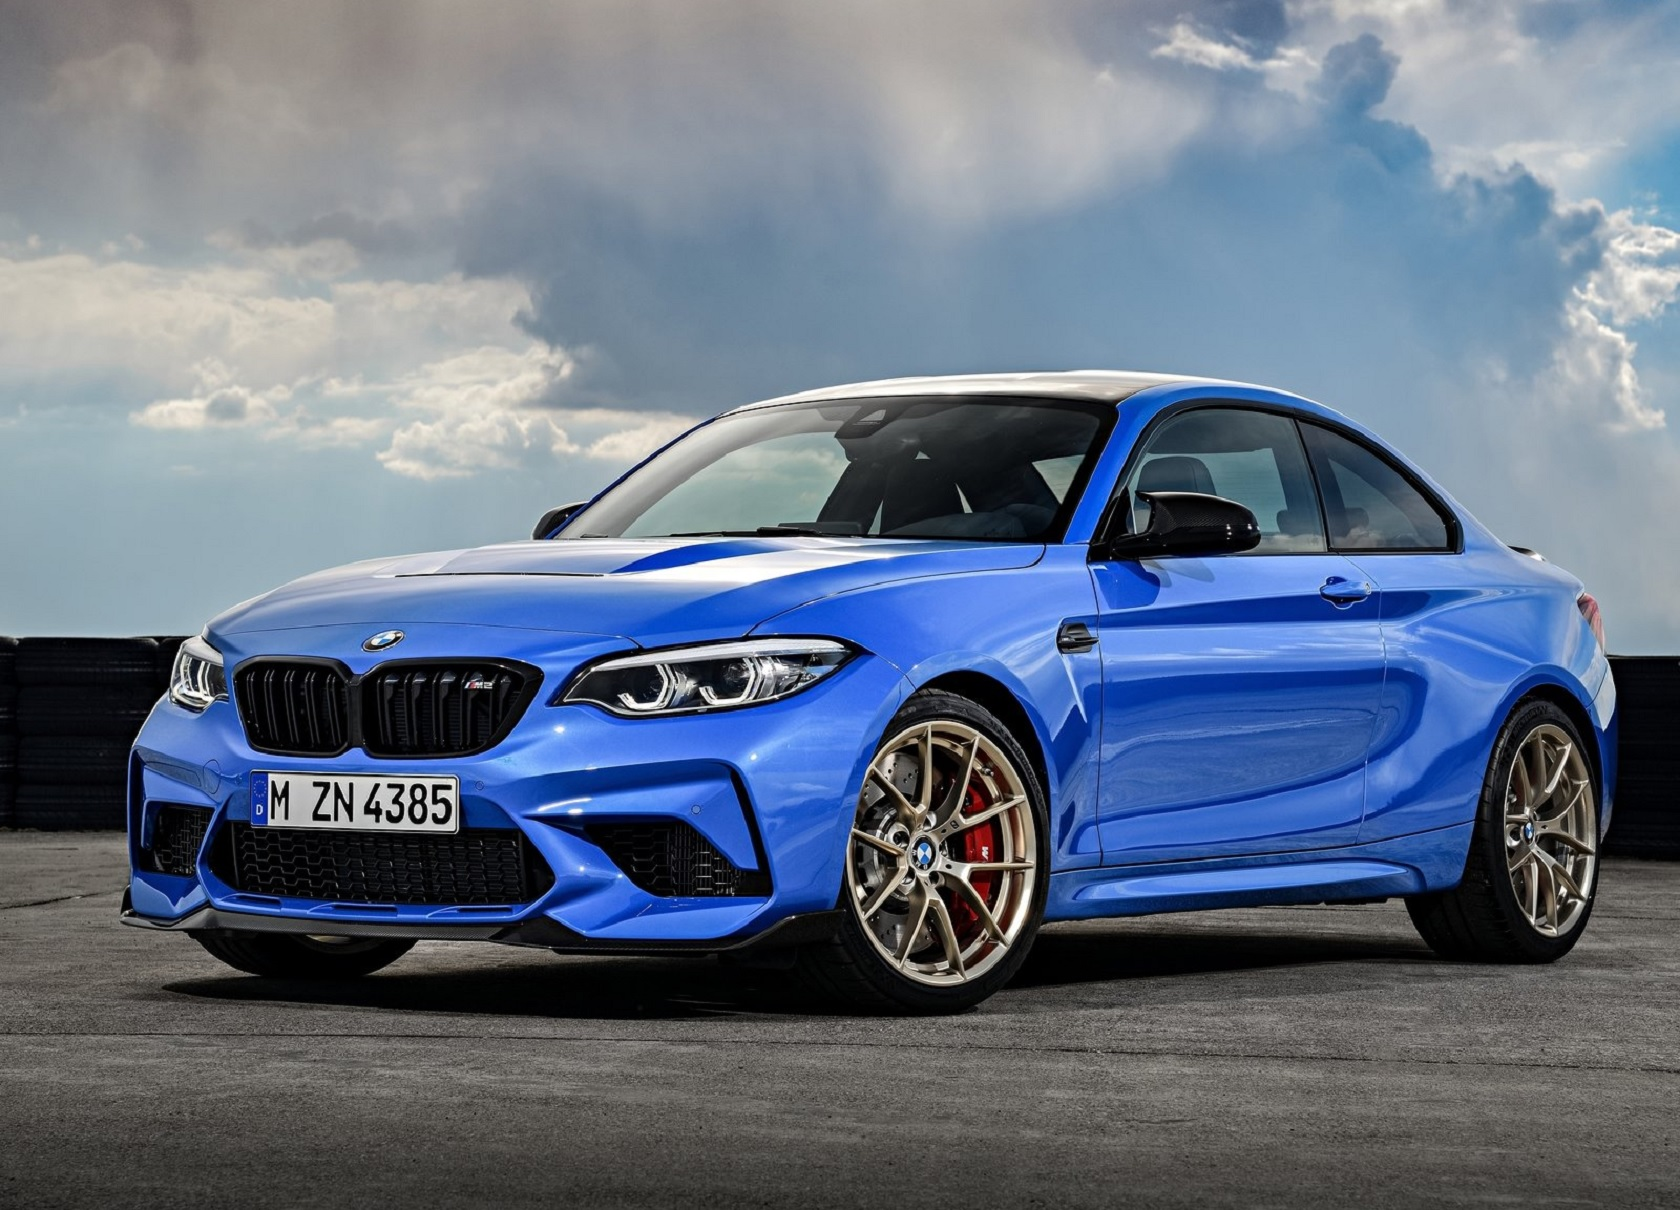 Does The Limited Edition 2021 Bmw M2 Cs Have Limited Appeal